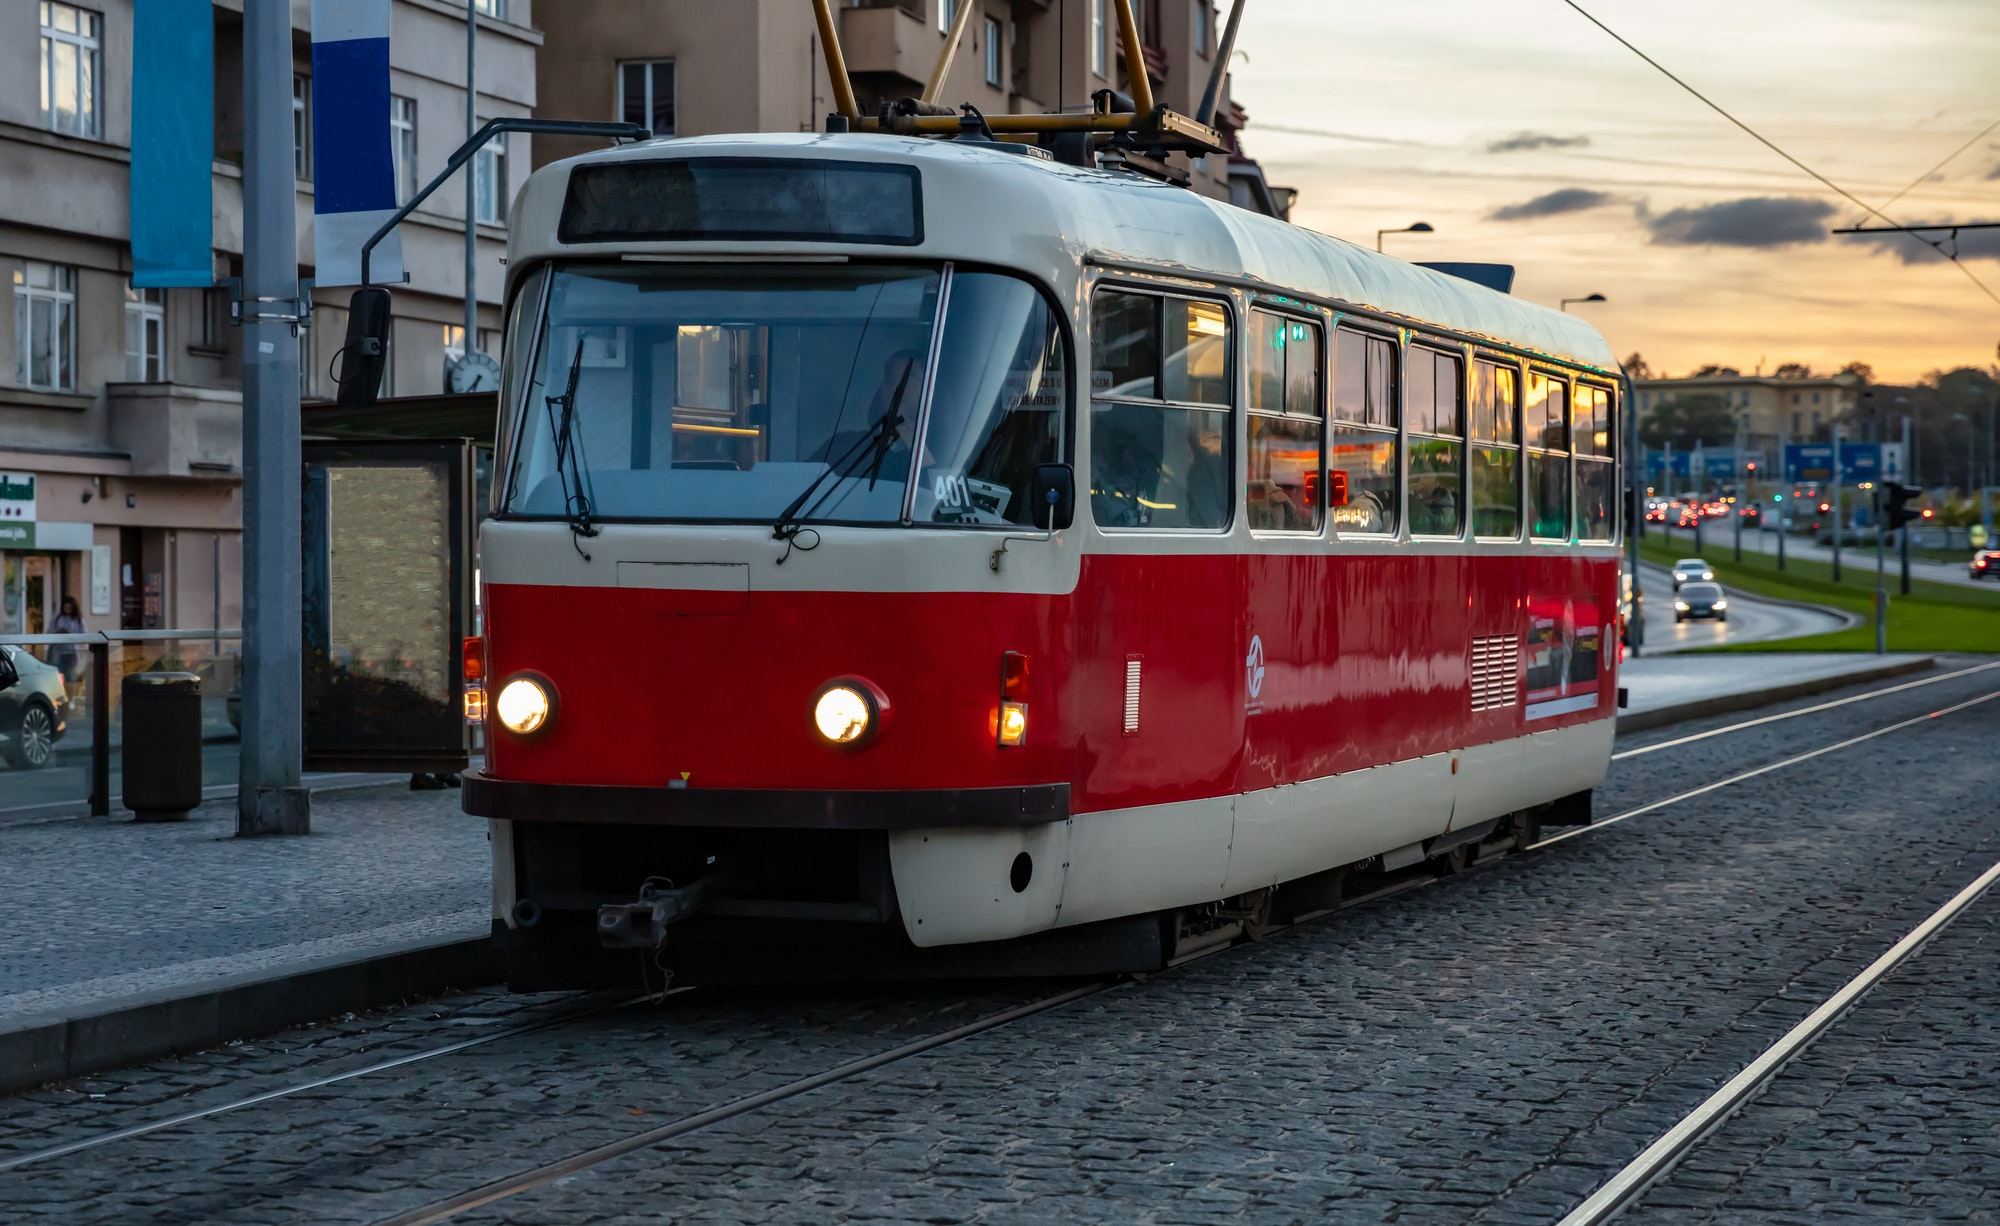 Old fashioned tram in the city center, Prague